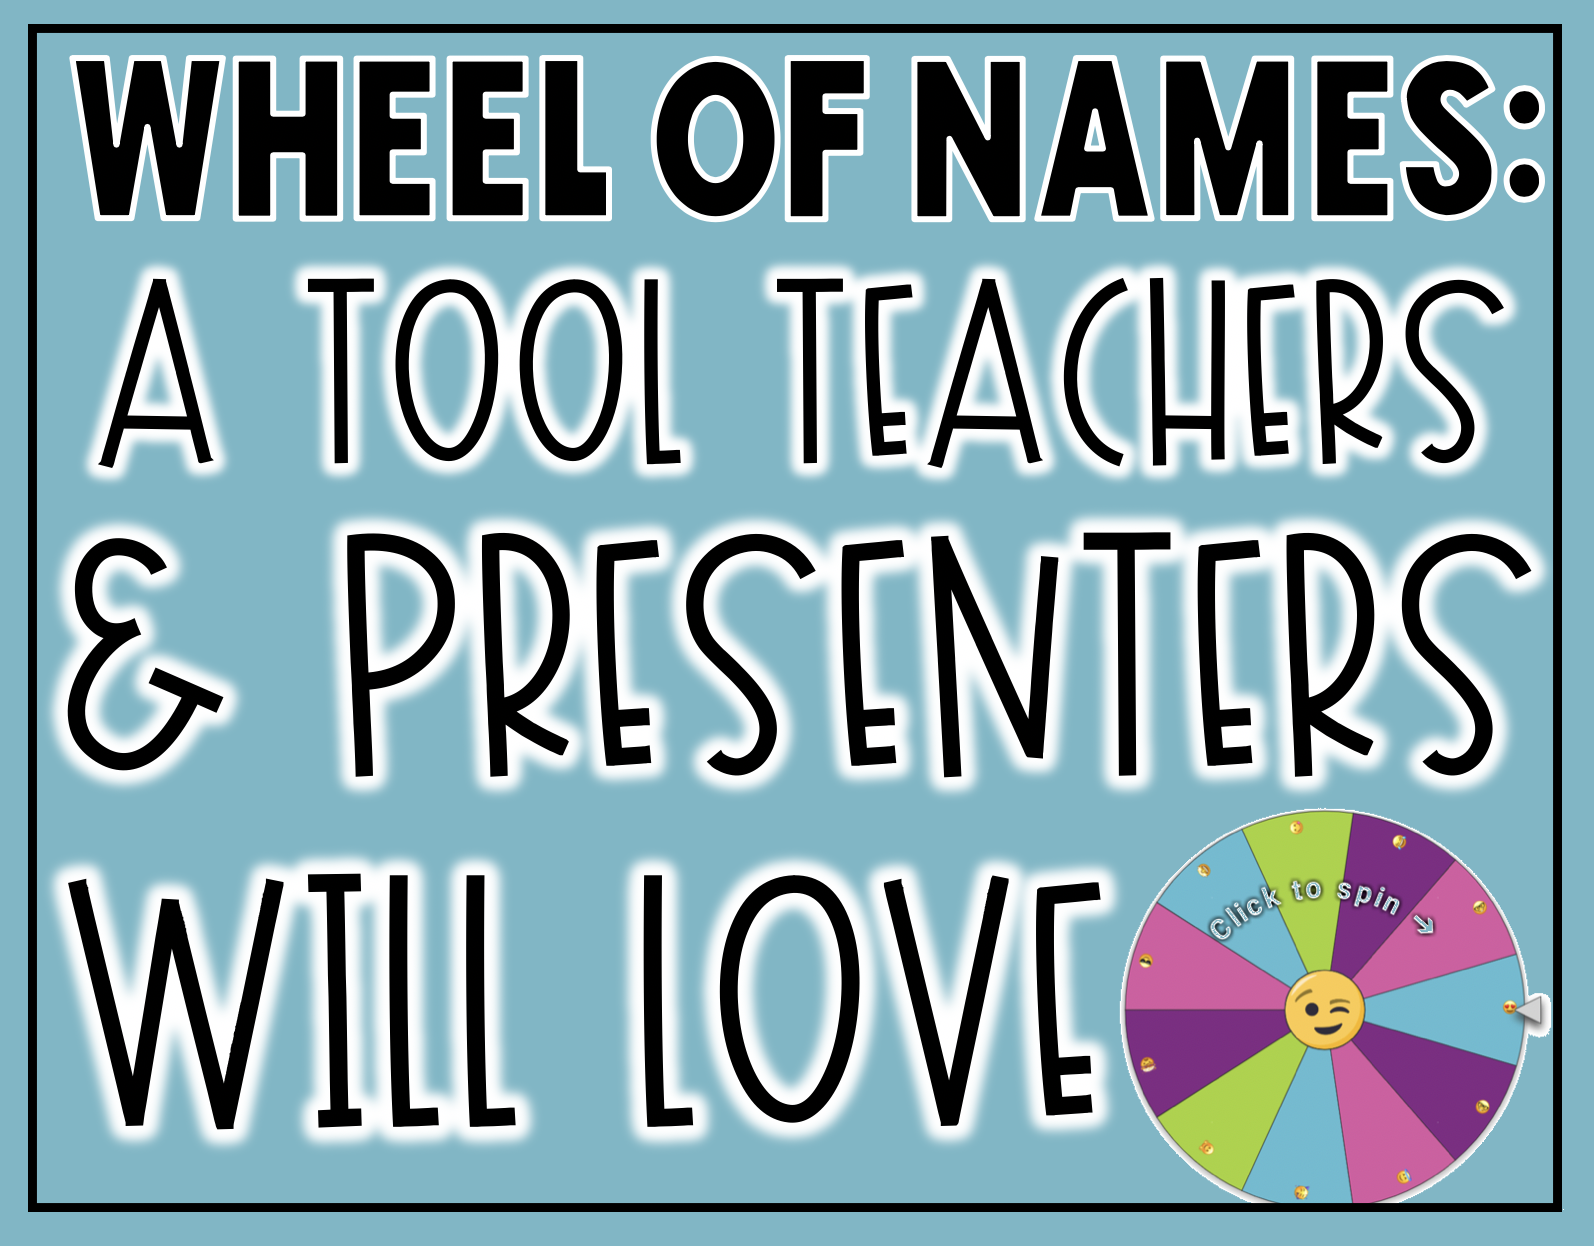 Wheel of Names: A Tool Teachers and Presenters Will LOVE for randomly selecting names, writing prompts, topics, and so much more! Presenters can use this tool to choose winners from tweets and surveys completed in Google Forms.